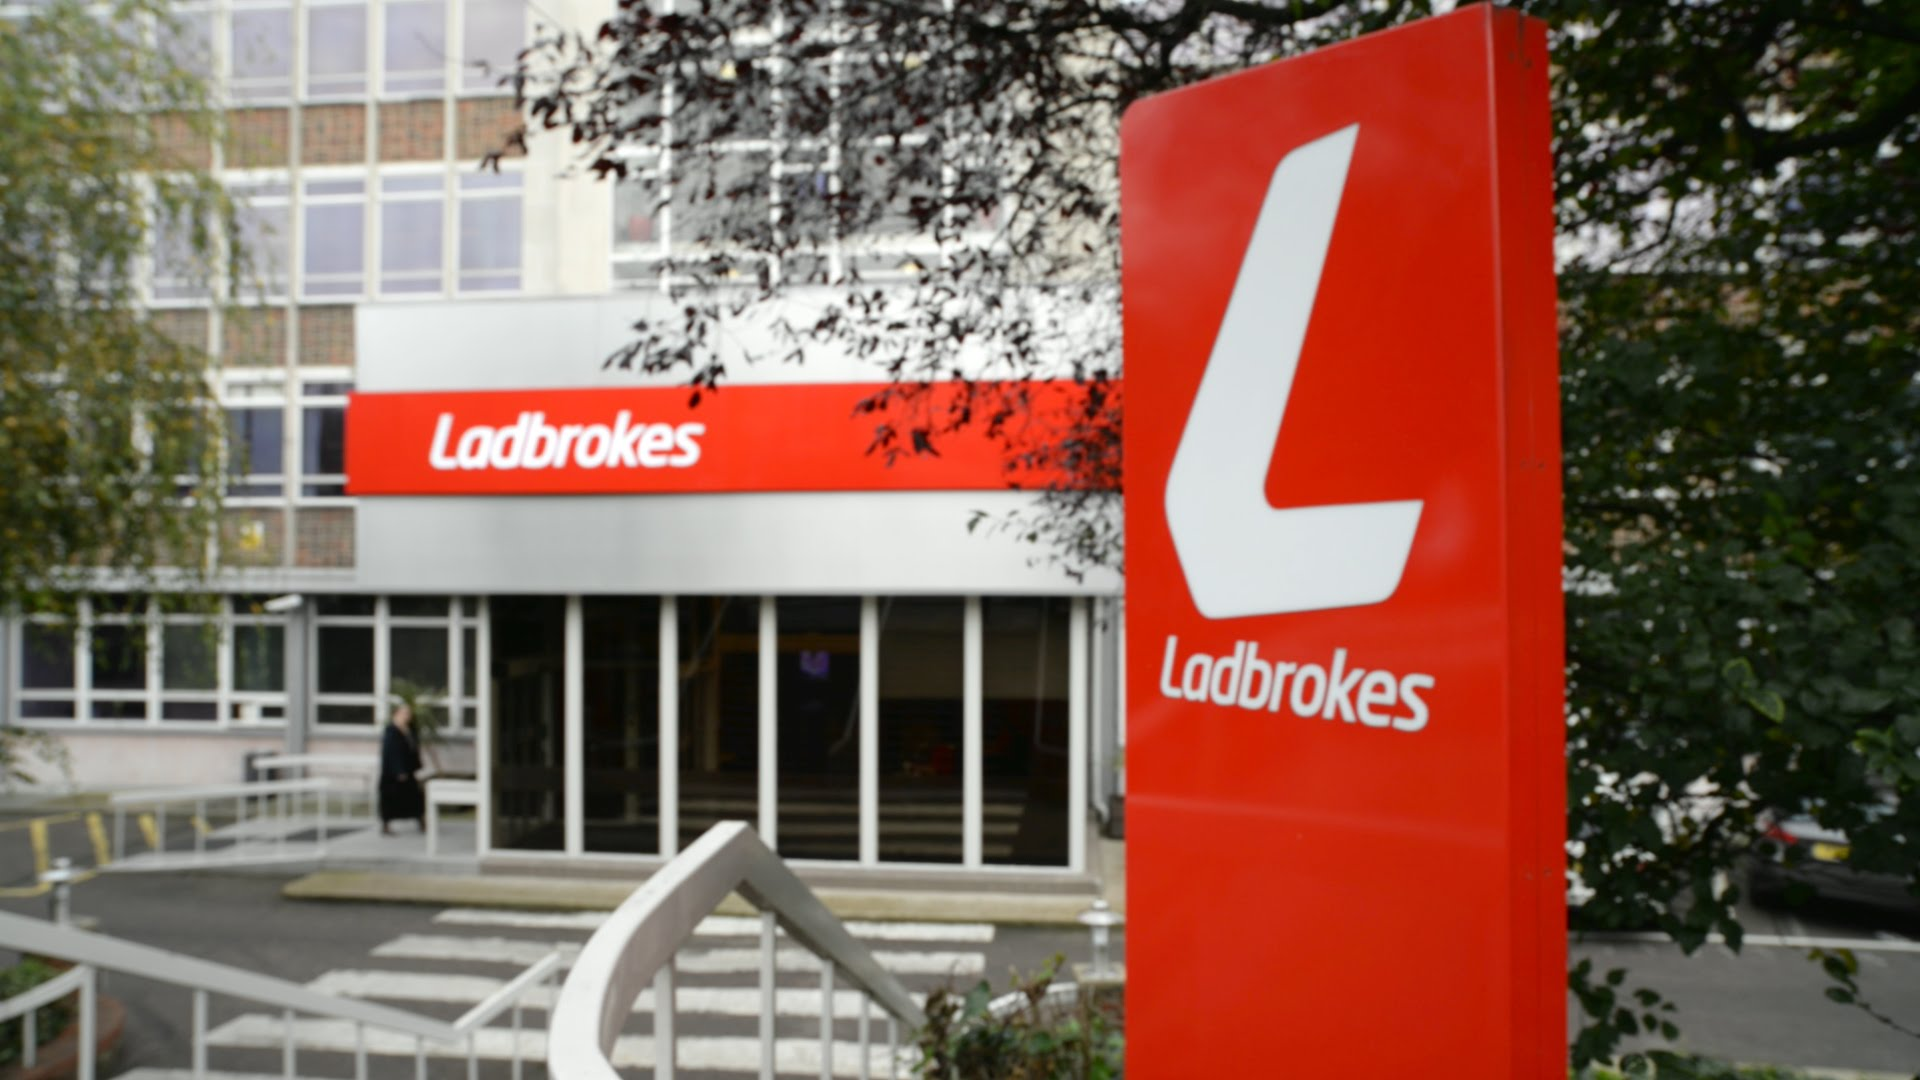 ladbrokes_office